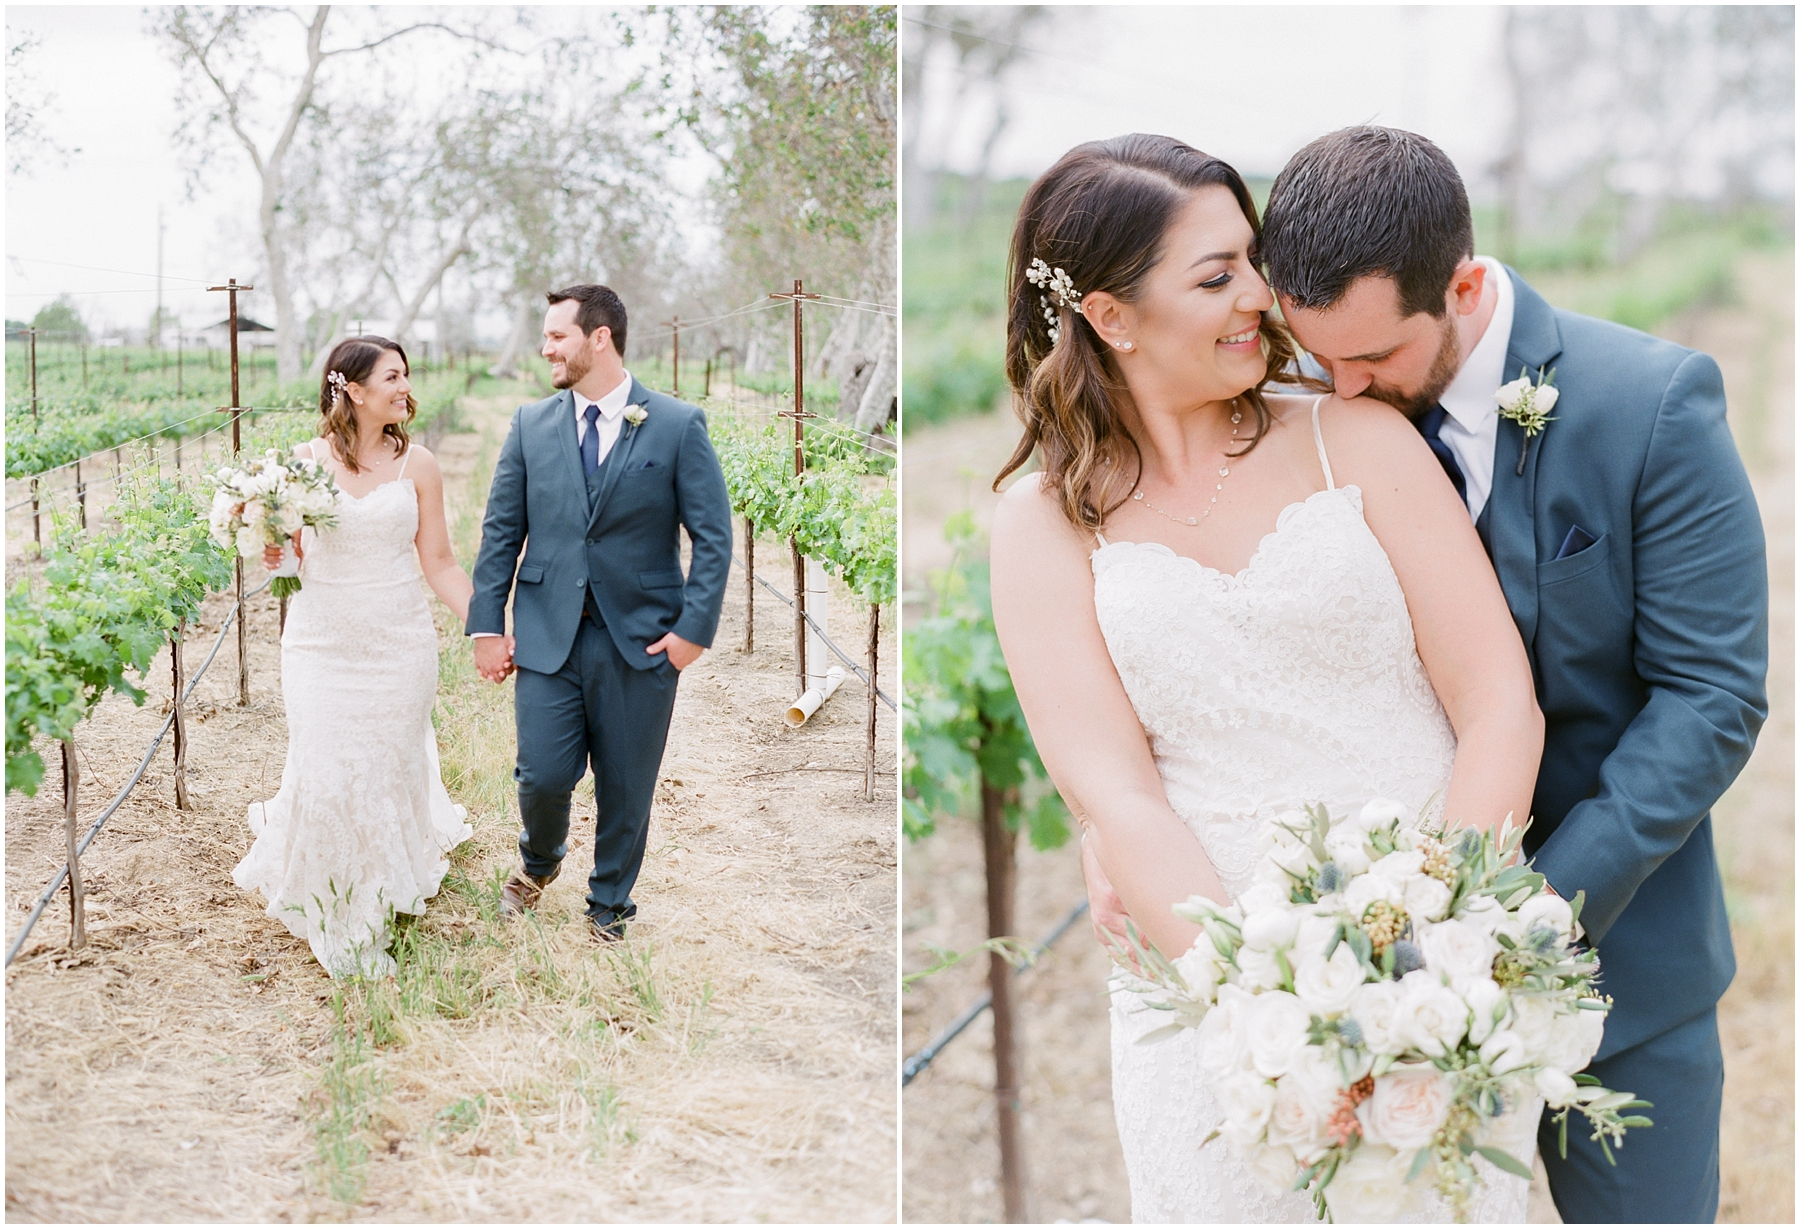 Muriettas-well-livermore-wedding-kristine-herman-photography-128.jpg